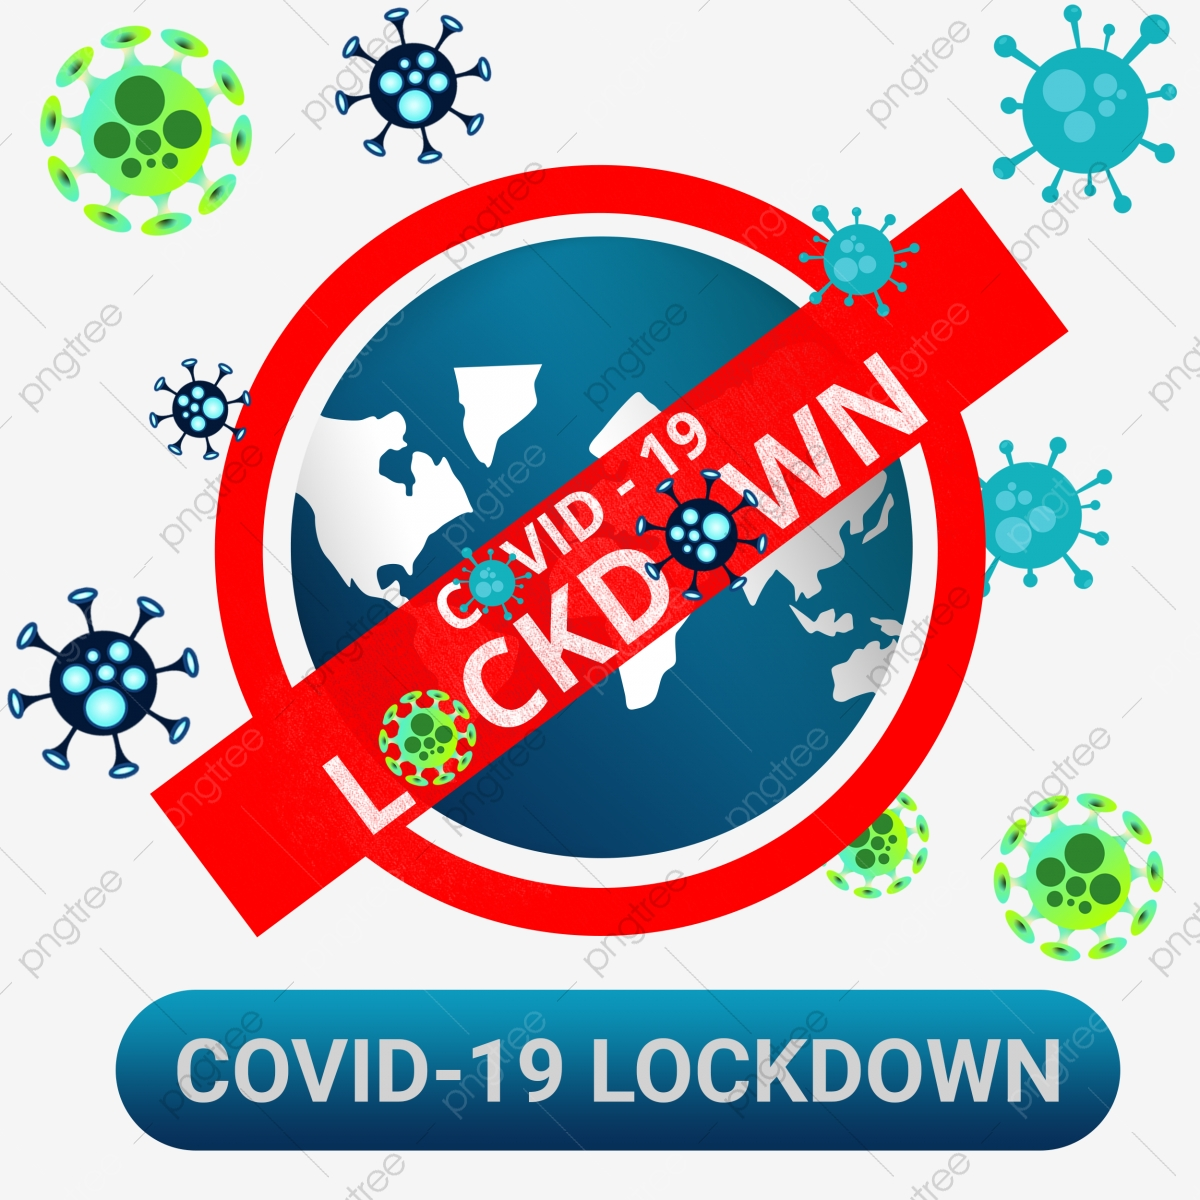 Covid 19 Lockdown Design Lockeddown Lockdown Covid 19 Png Transparent Clipart Image And Psd File For Free Download